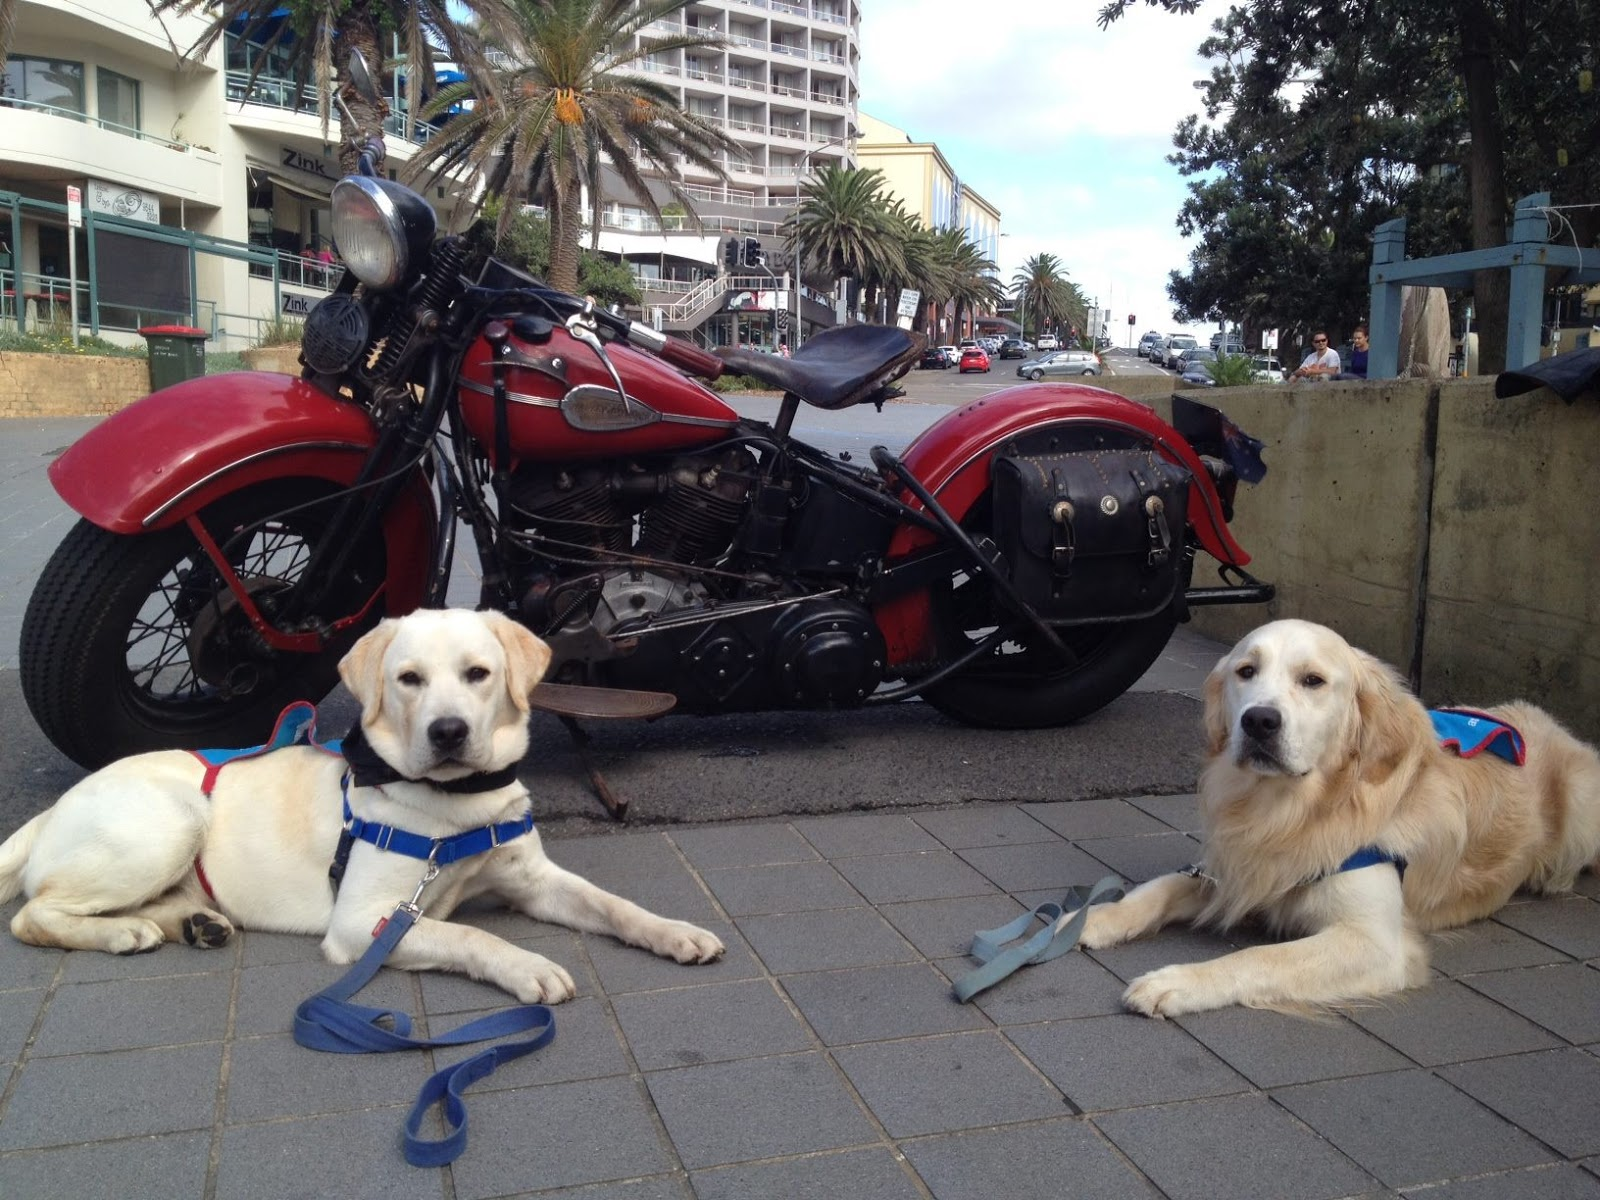 Assistance Dogs Labrador Retrievers in front of red Harley motorbike